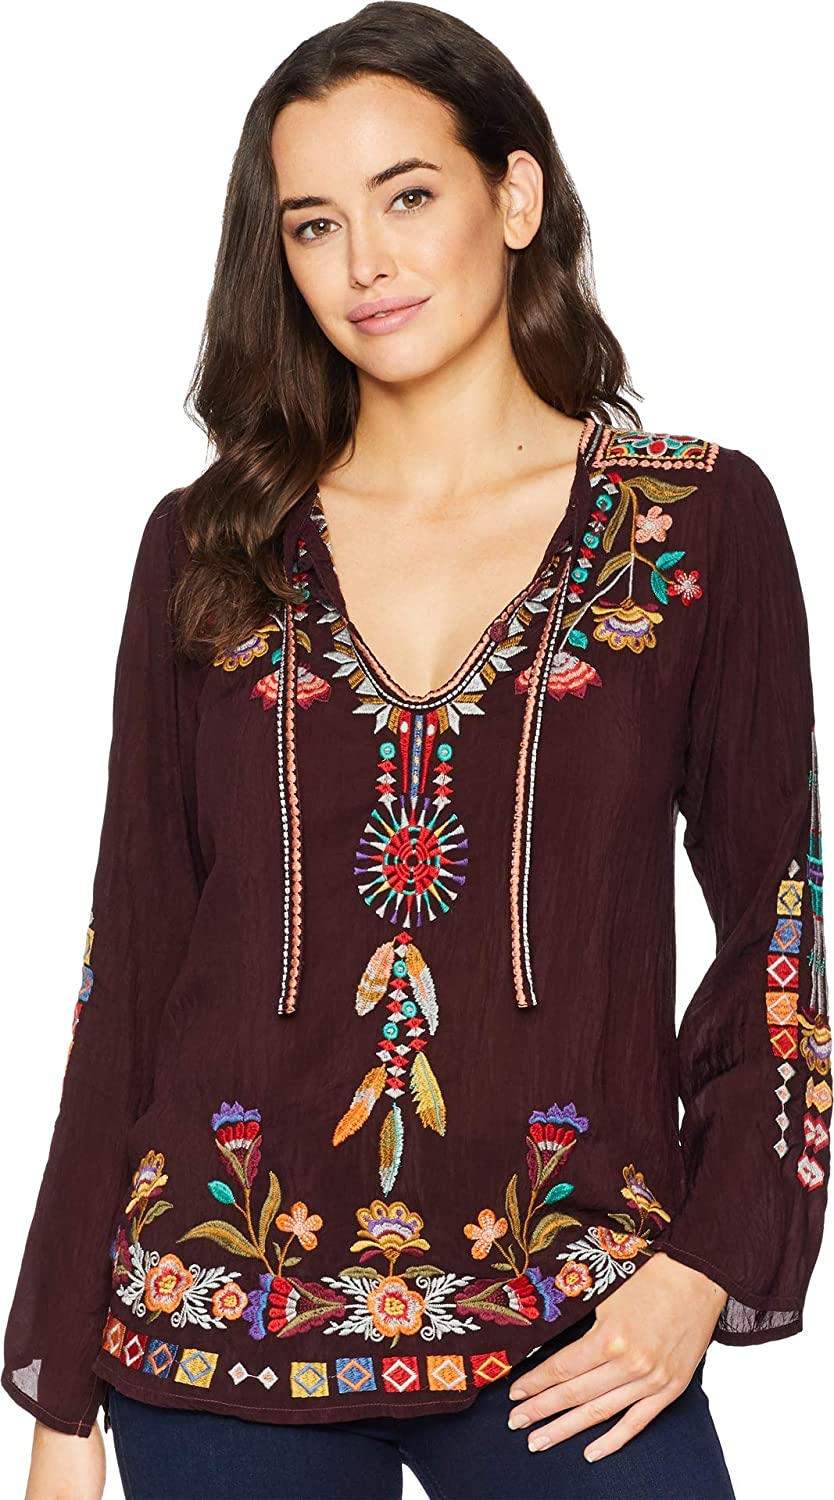 Johnny Was Womens Tie Neck Embroidered Blouse Blouse